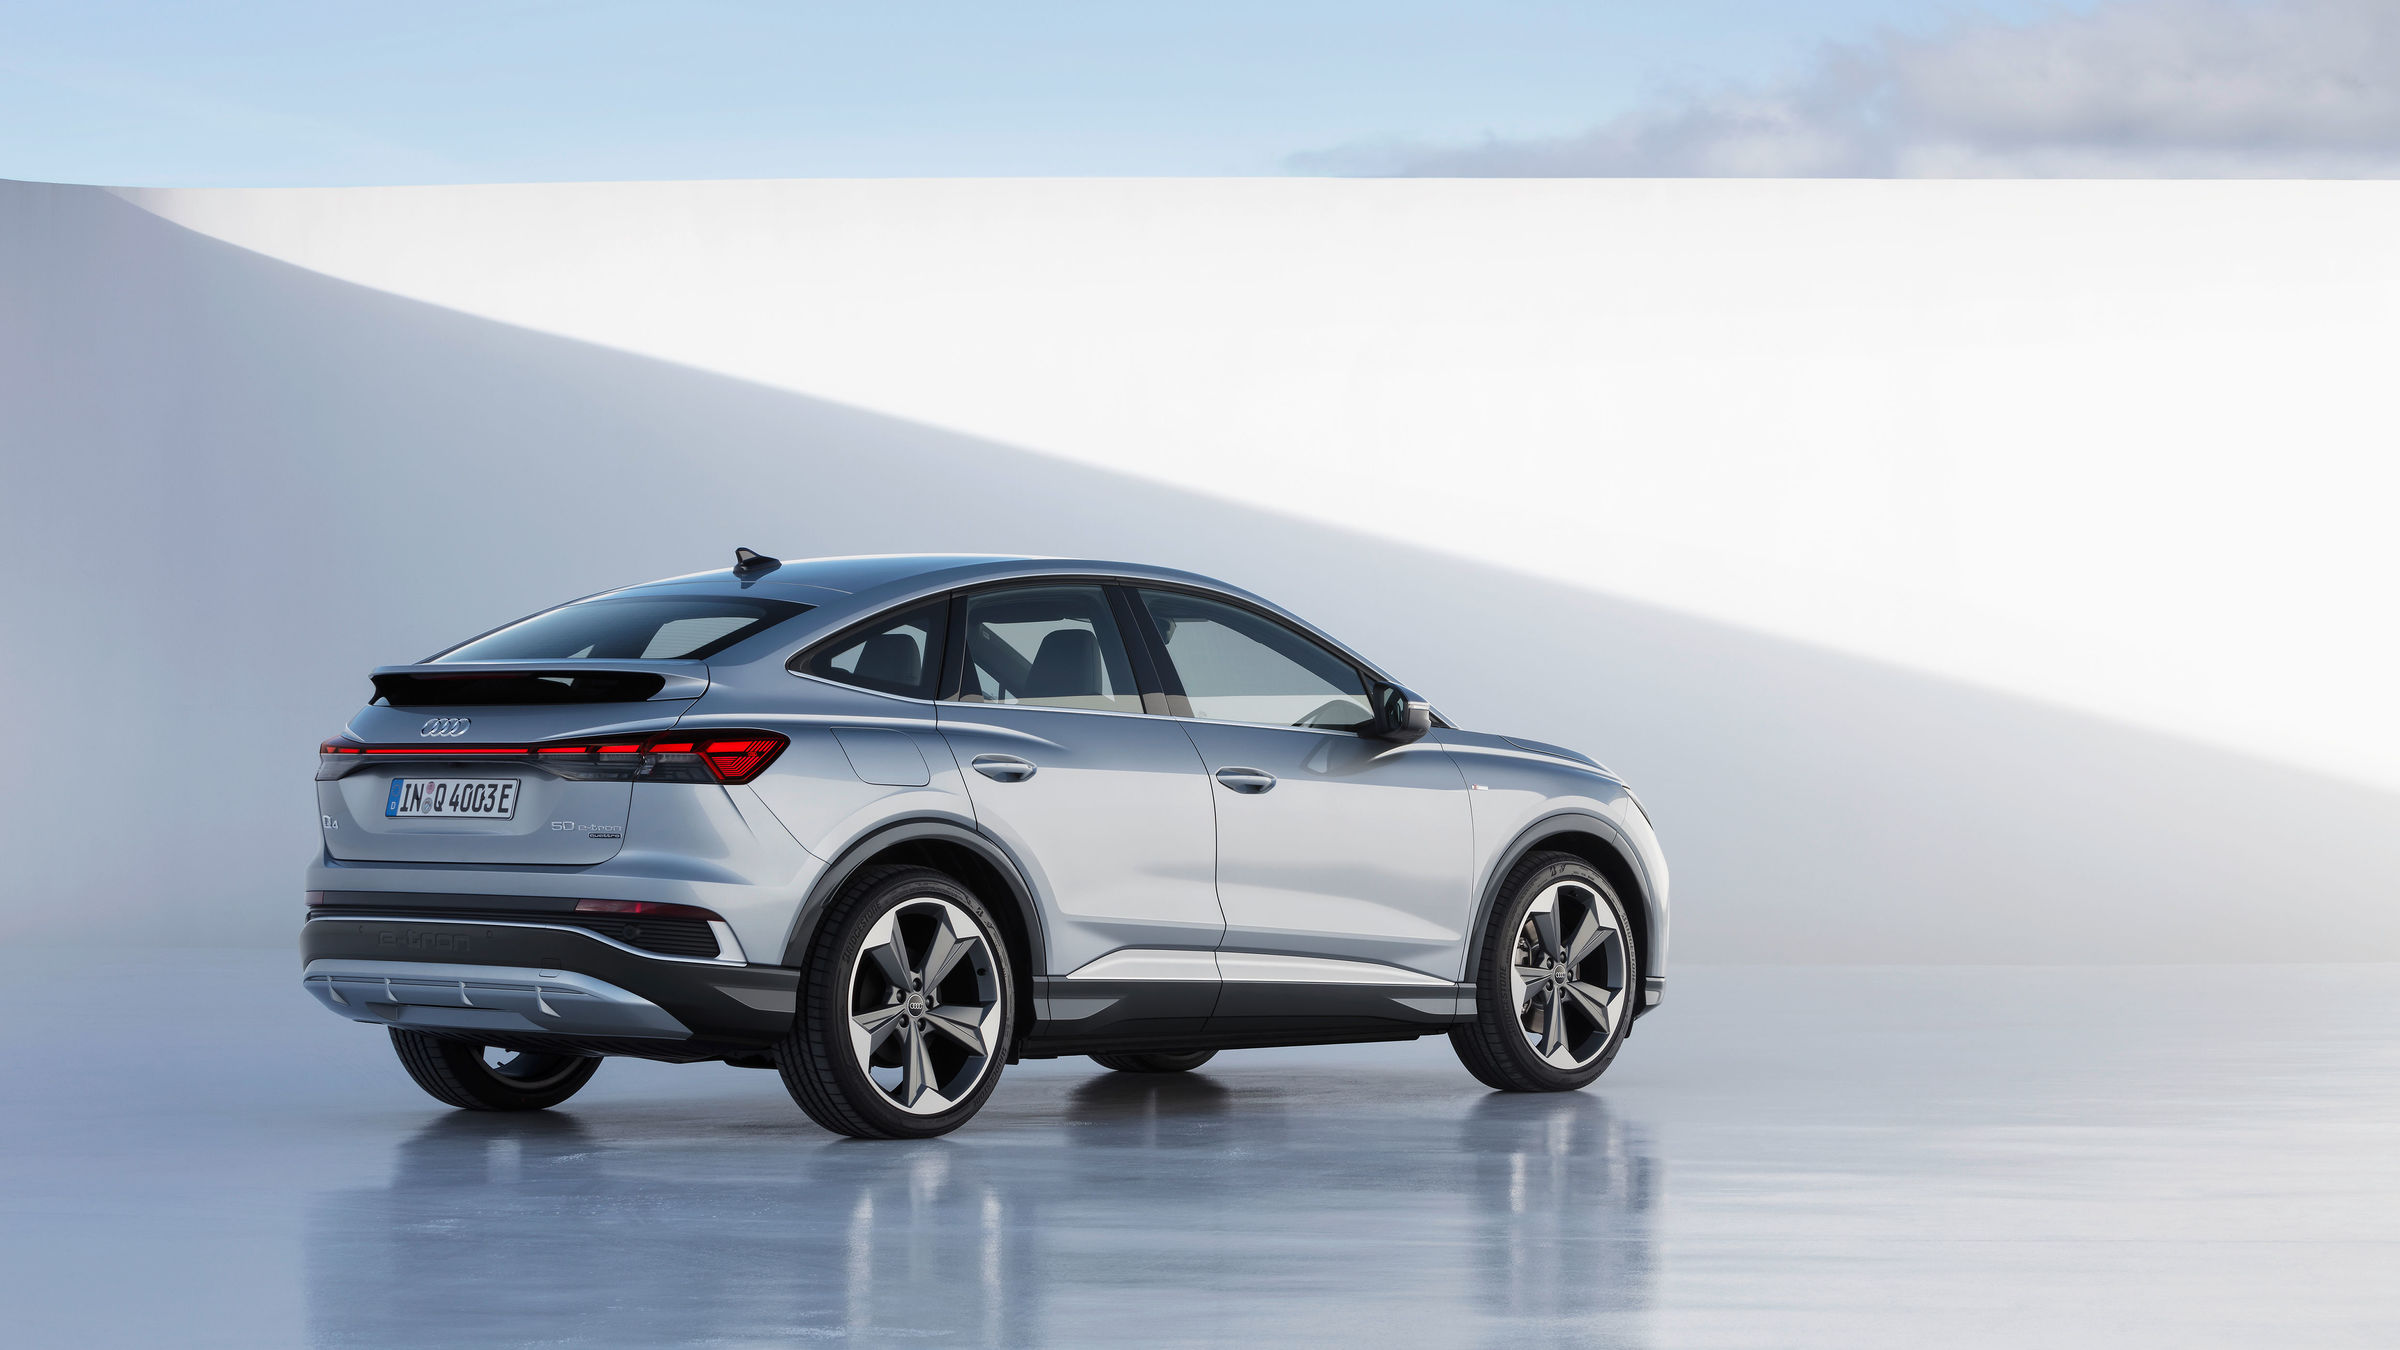 Electric, efficient and emotionally appealing: Audi Q4 e-tron and Q4 Sportback e-tron - Image 3